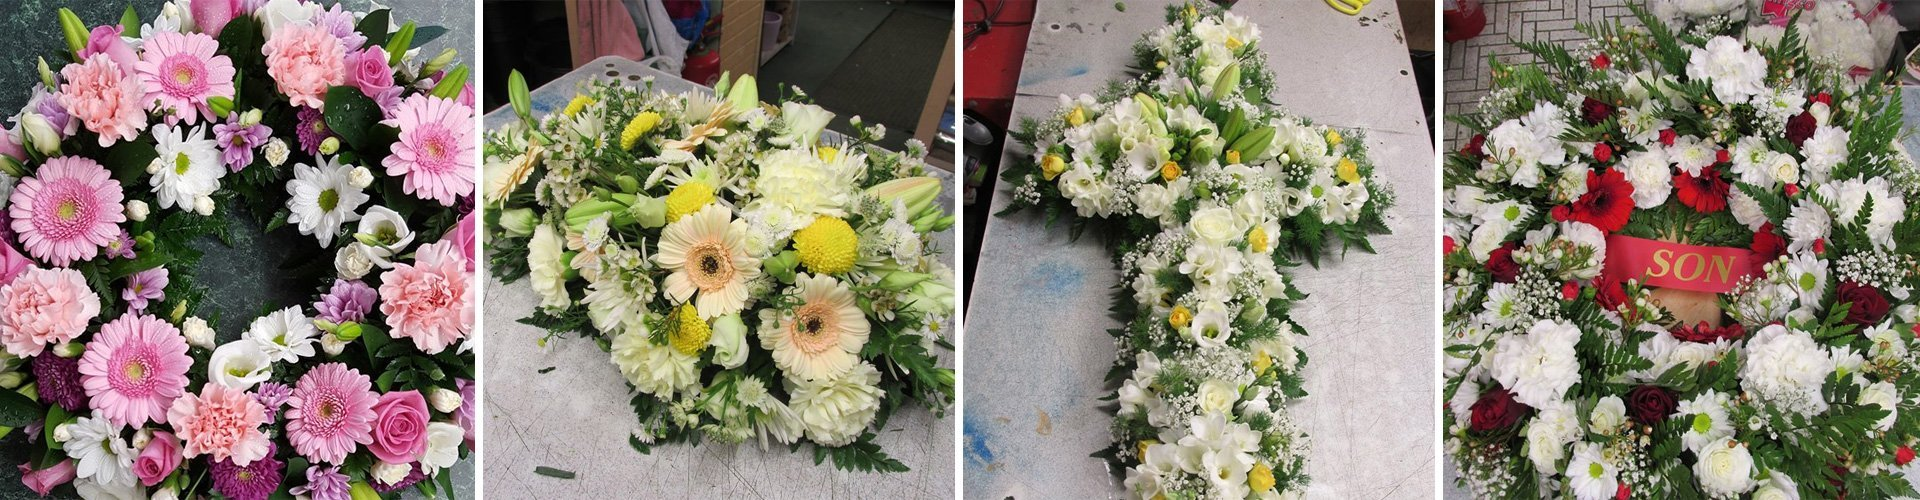 Contact us for funeral flowers in barry funeral flowers izmirmasajfo